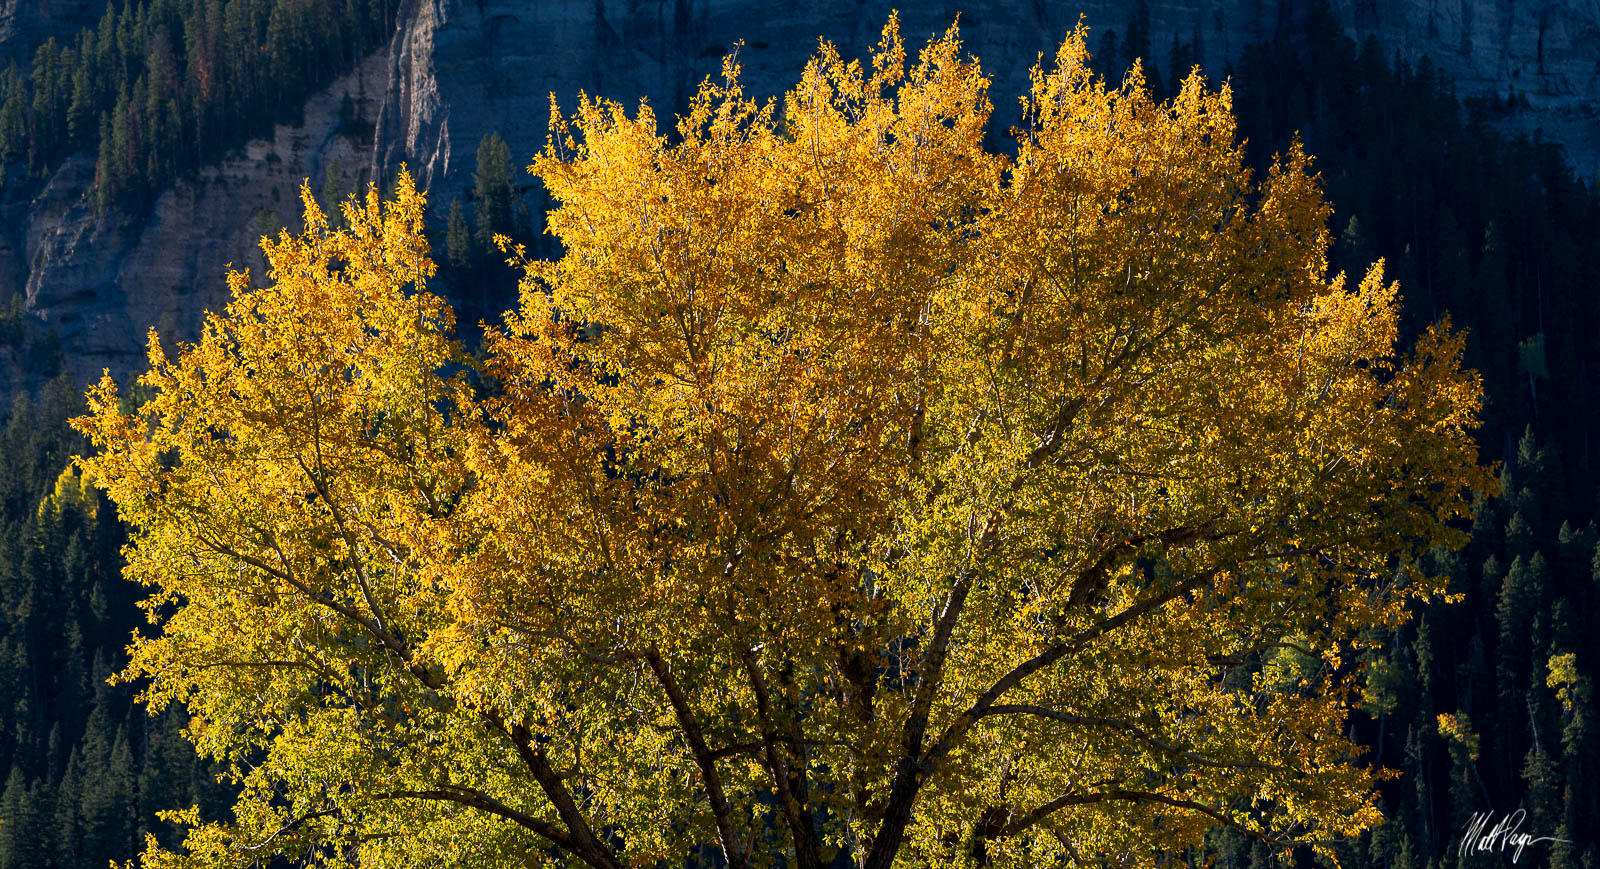 One of my favorite spots to spend a morning in fall is near Ridgway, Colorado. There's a set of large cottonwood trees that are...